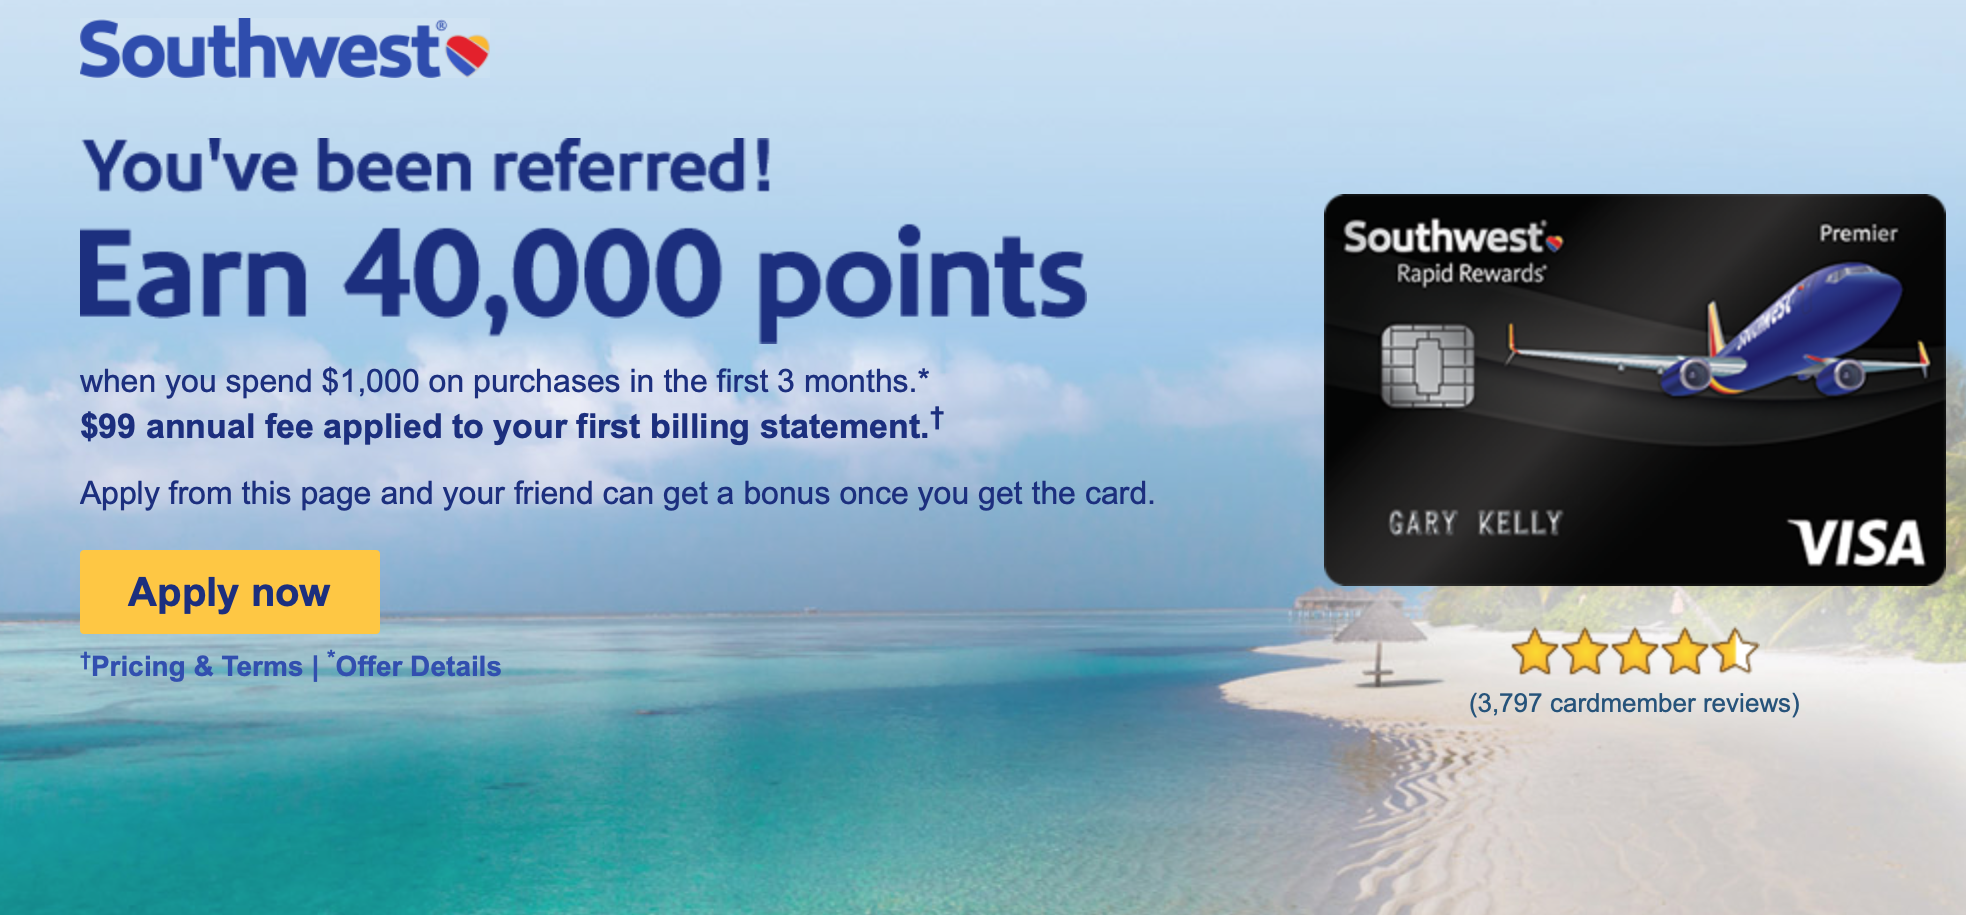 southwest rapid rewards credit card application status